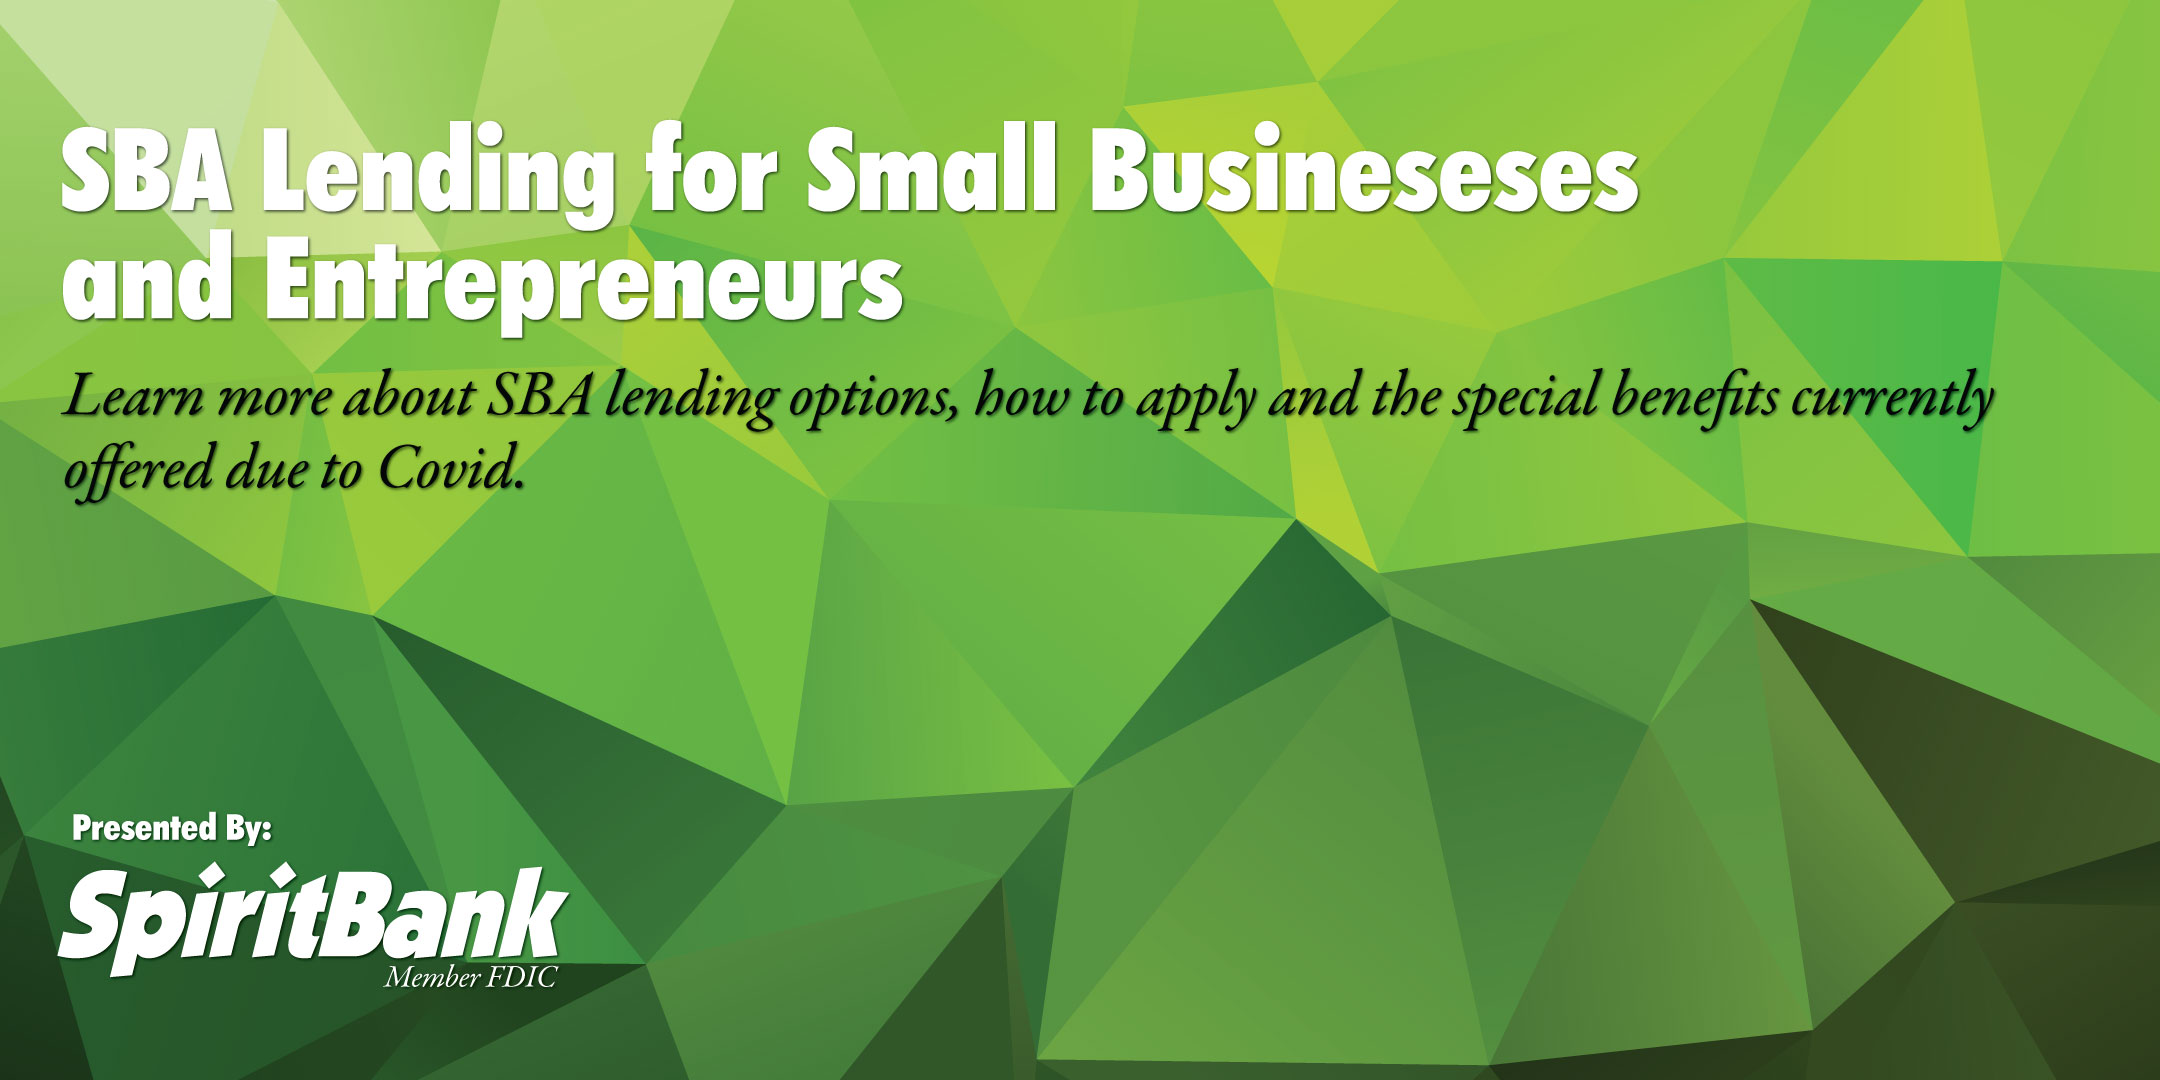 SBA Lending for Small Businesses and Entrepreneurs